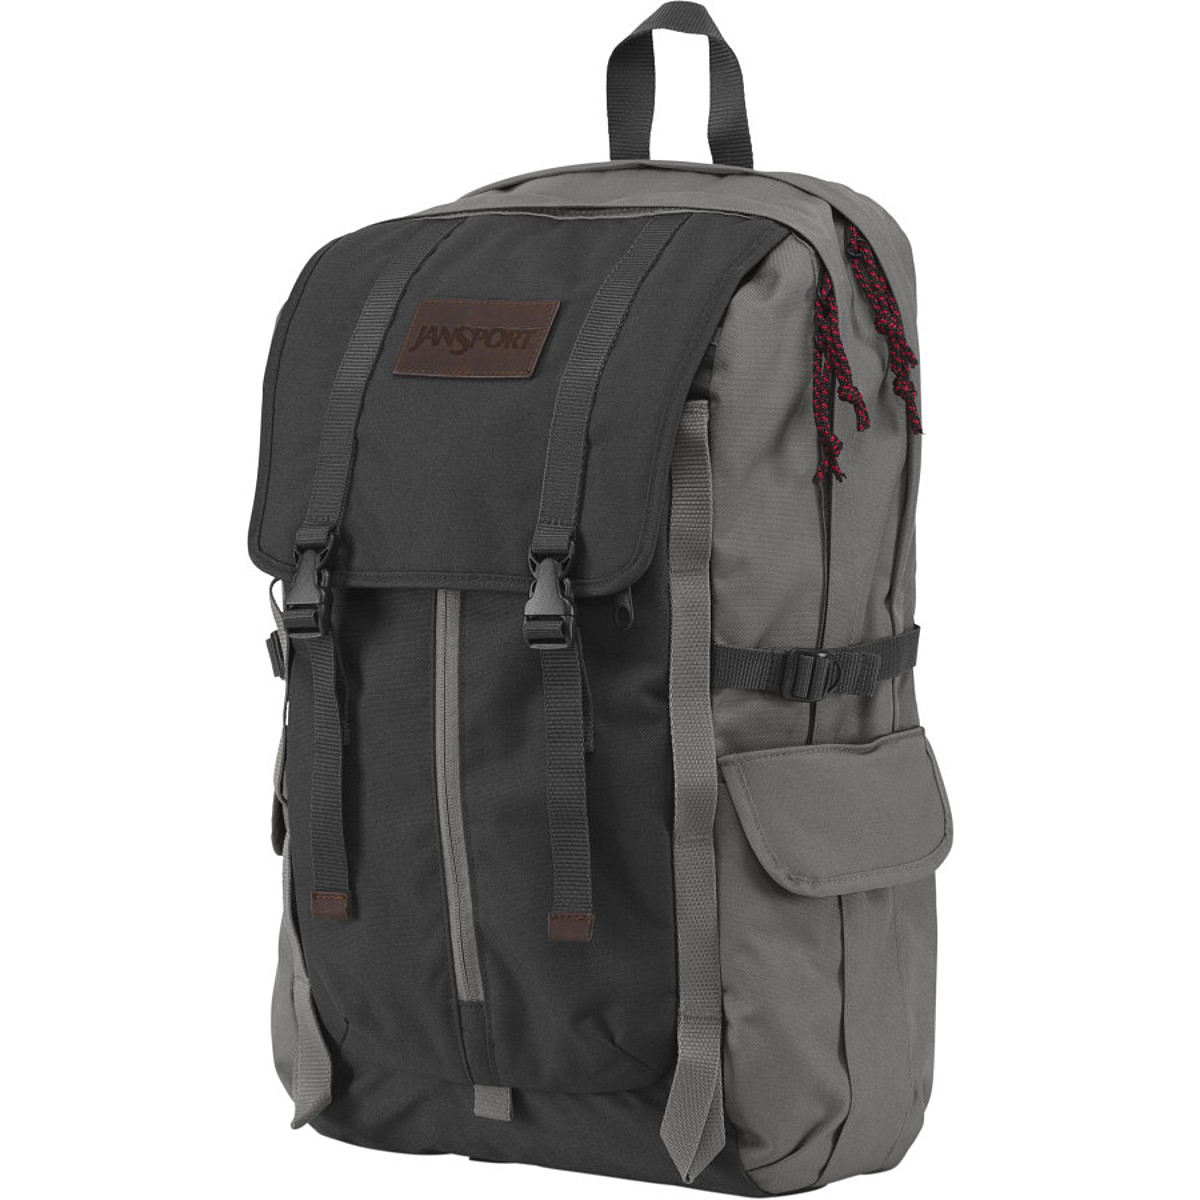 JanSport Locklyn